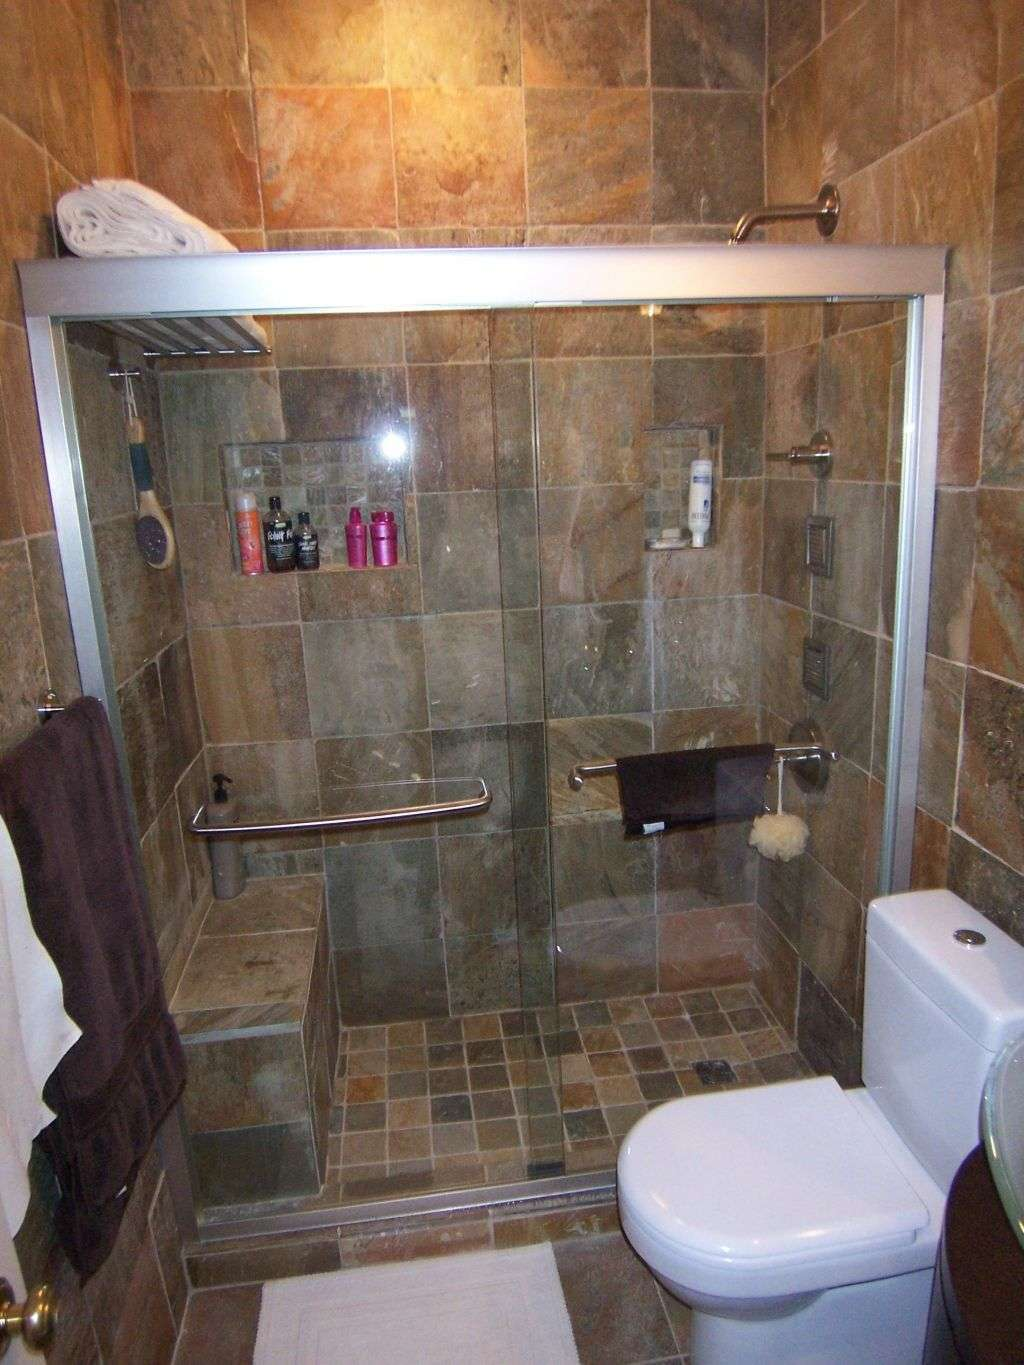 bathroom tile ideas small bathroom 40 wonderful pictures and ideas of 1920s bathroom tile designs 22414